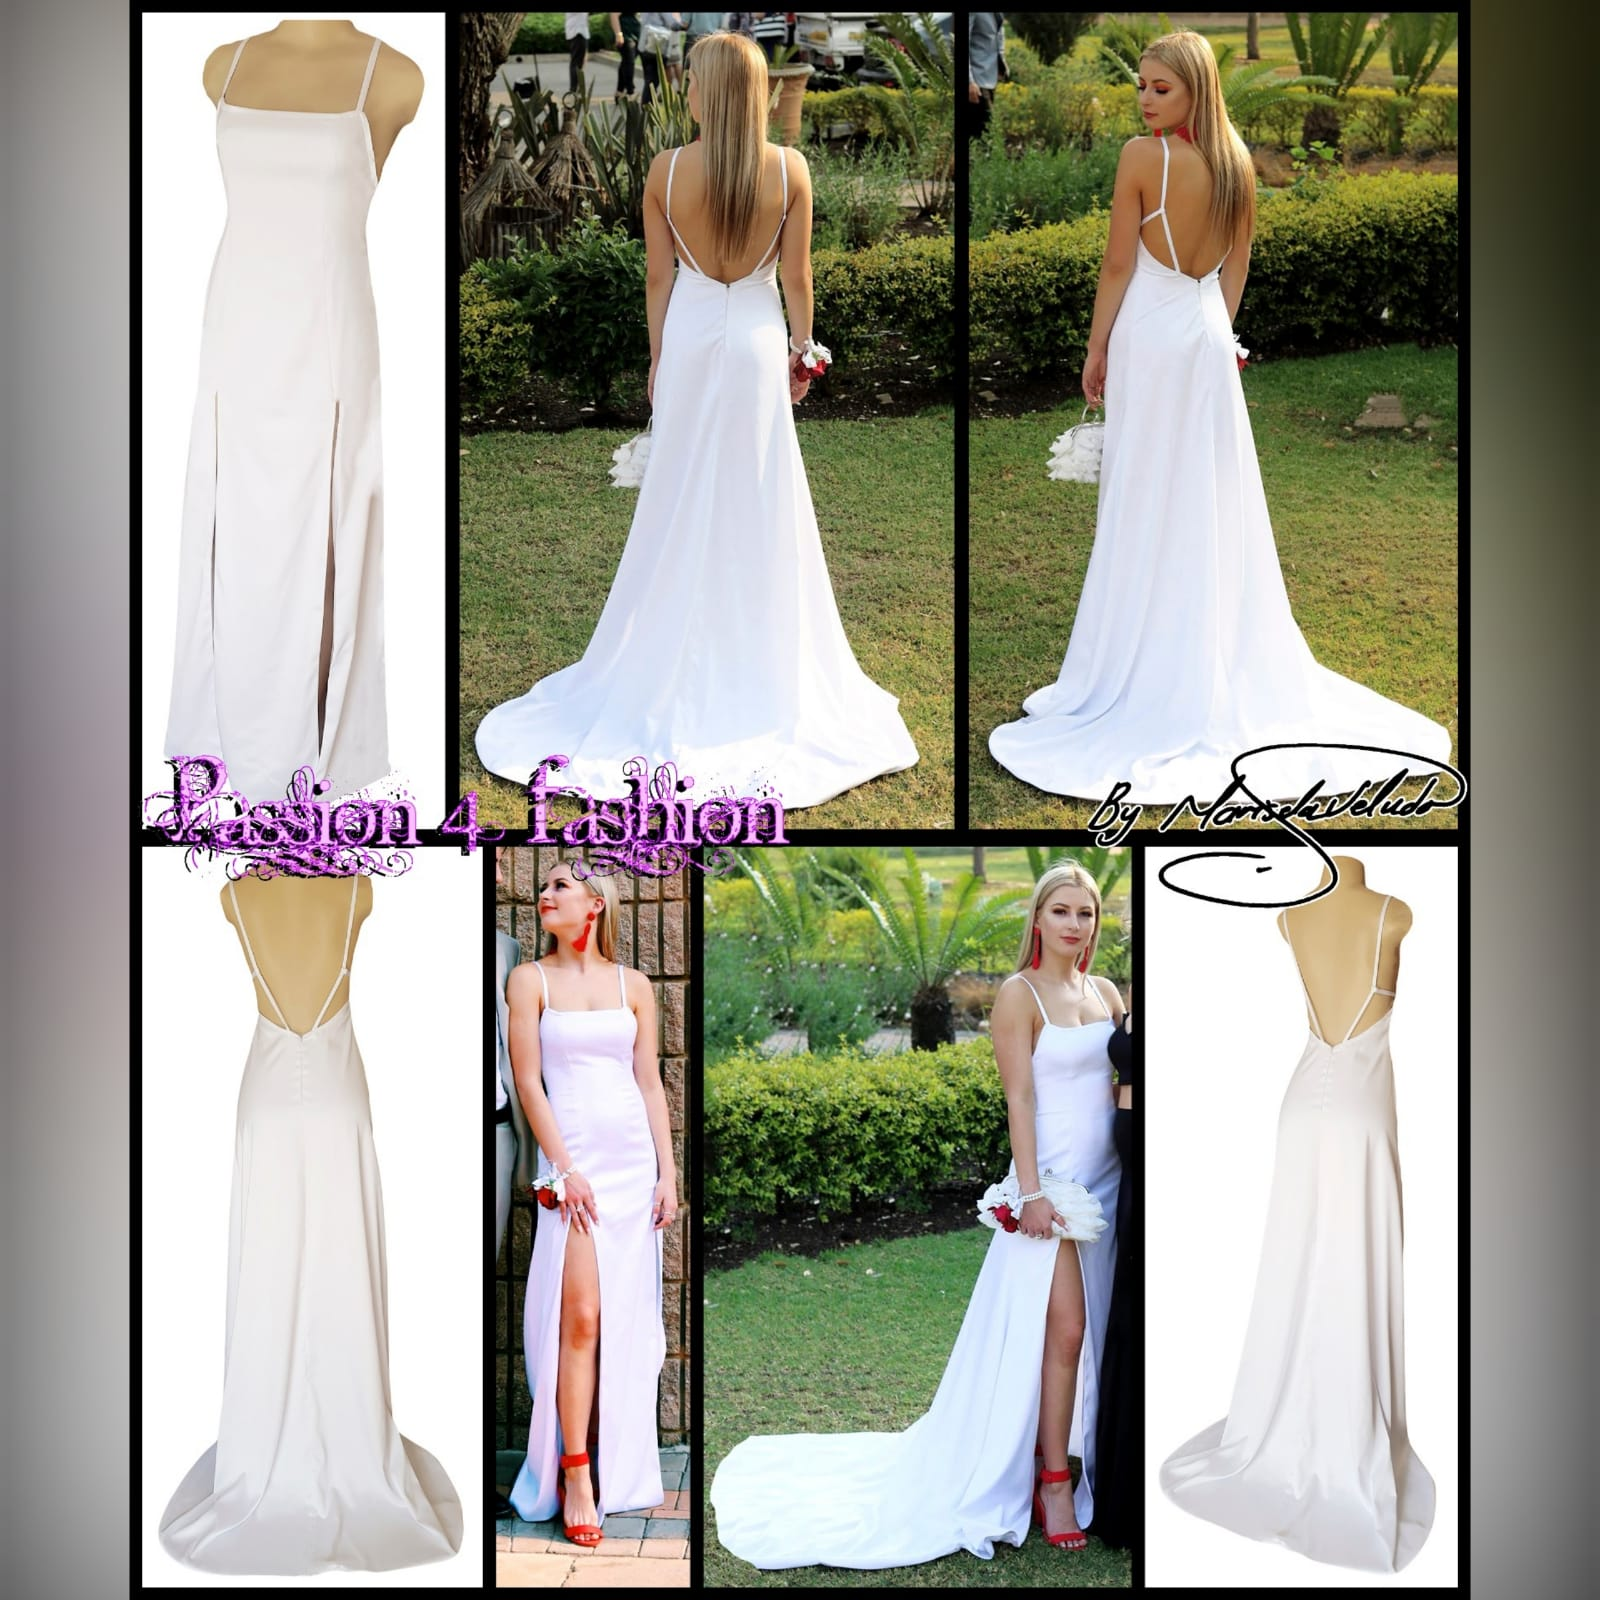 White satin long prom dress with a low open back 8 white satin long prom dress with a low open back, with strap detail. Straight neckline, 2 slits and a train.